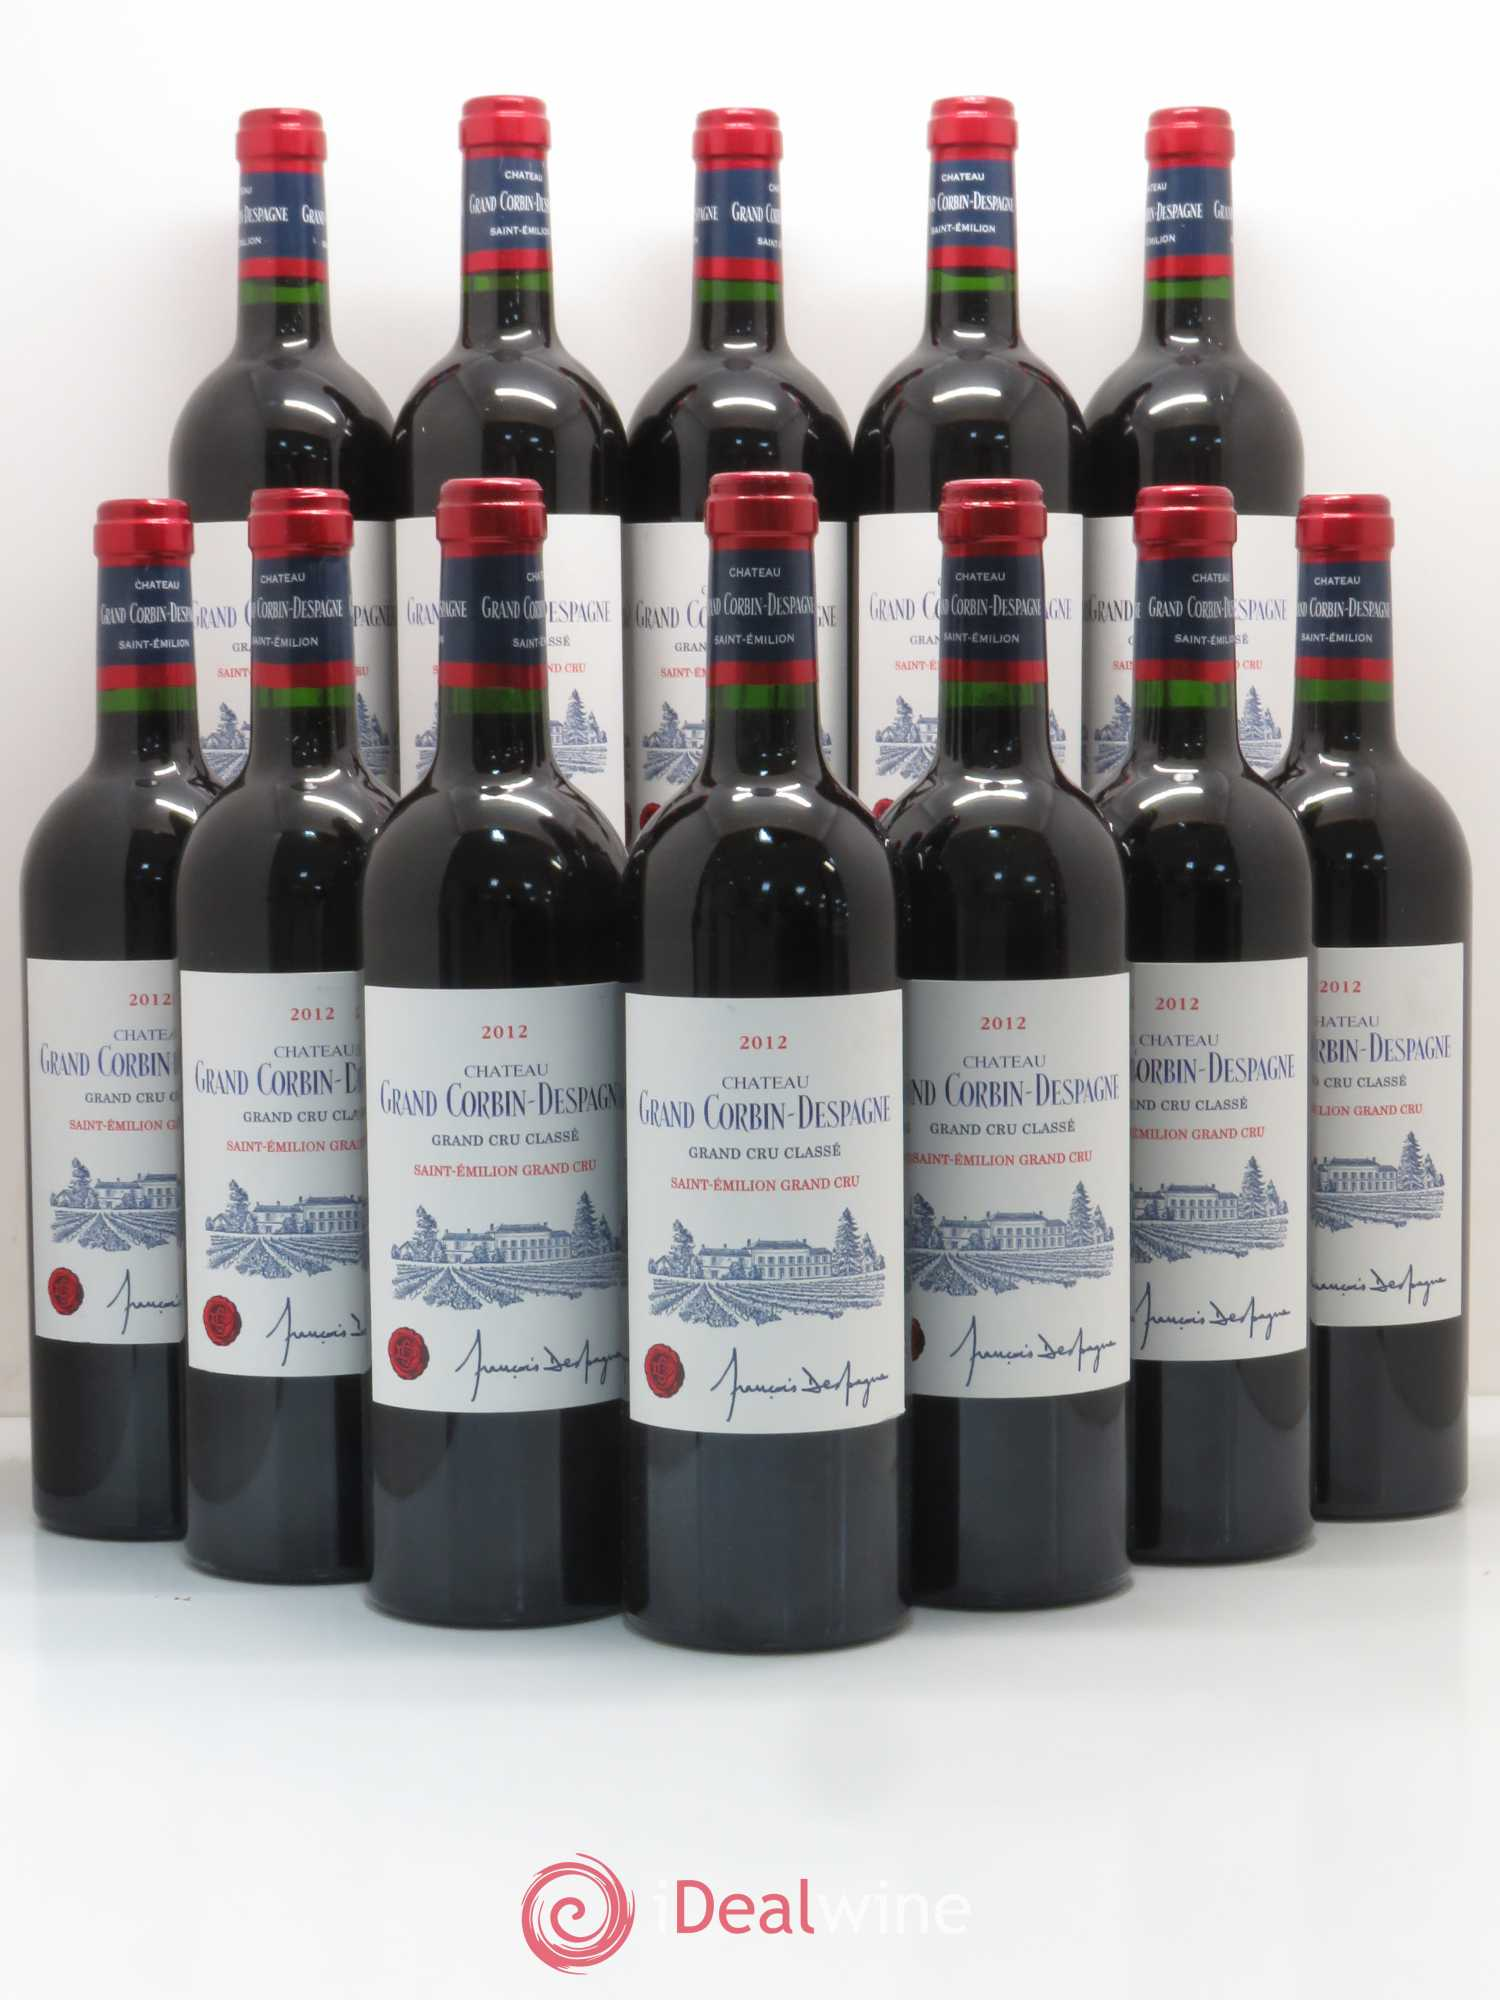 Château Grand Corbin Despagne Grand Cru Classé  2012 - Lot of 12 Bottles